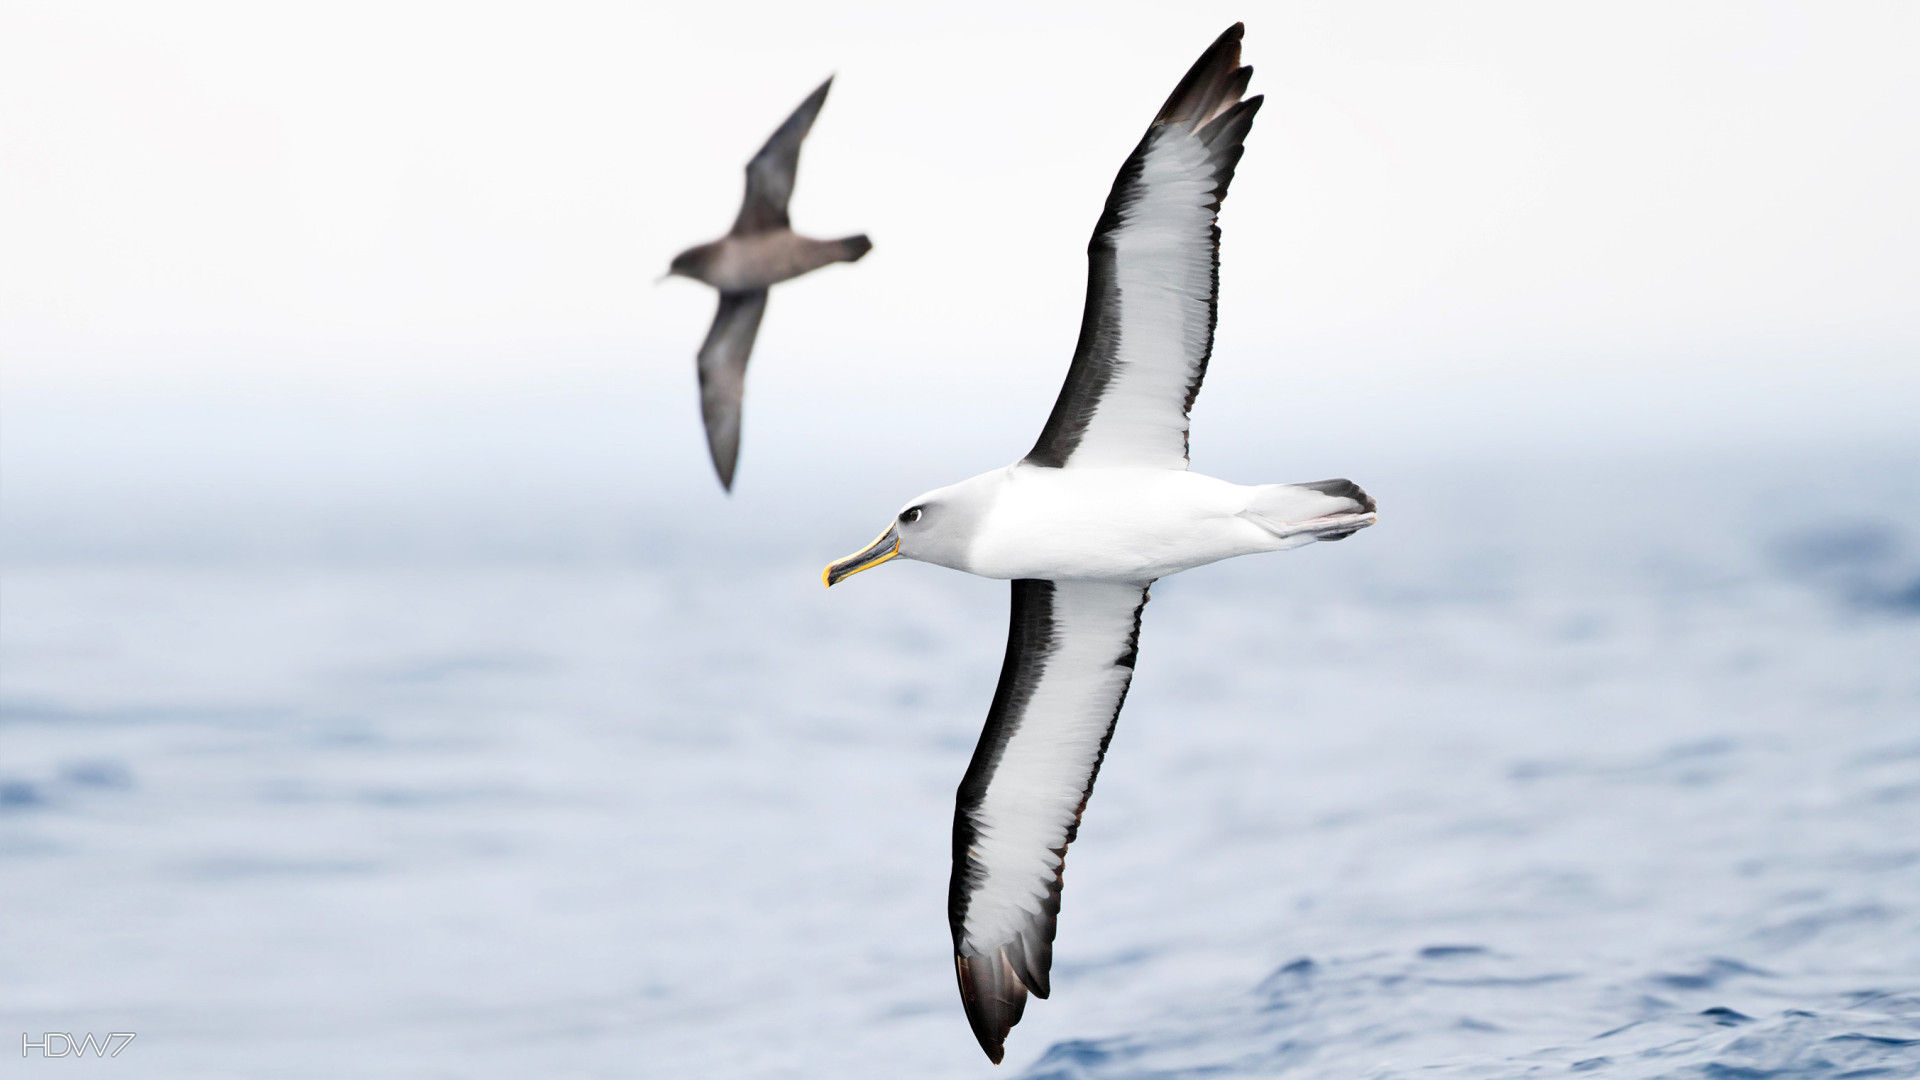 albatross bullers mollymawk flight birds flying